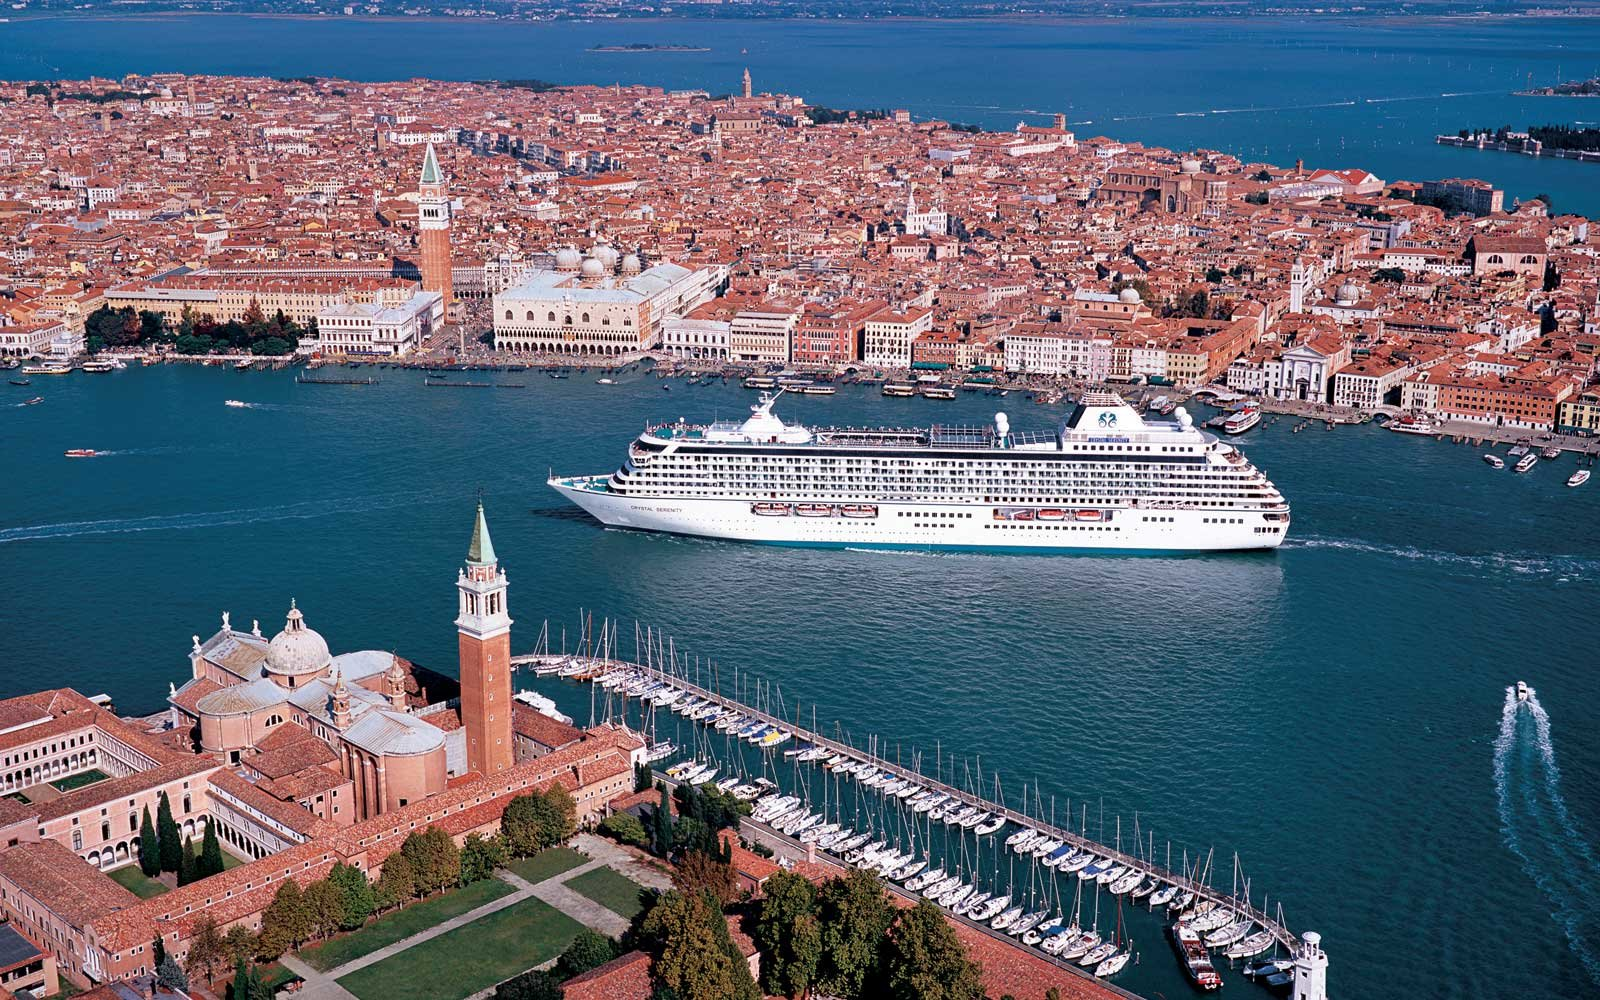 Crystal Serenity cruise ship in Venice, Italy